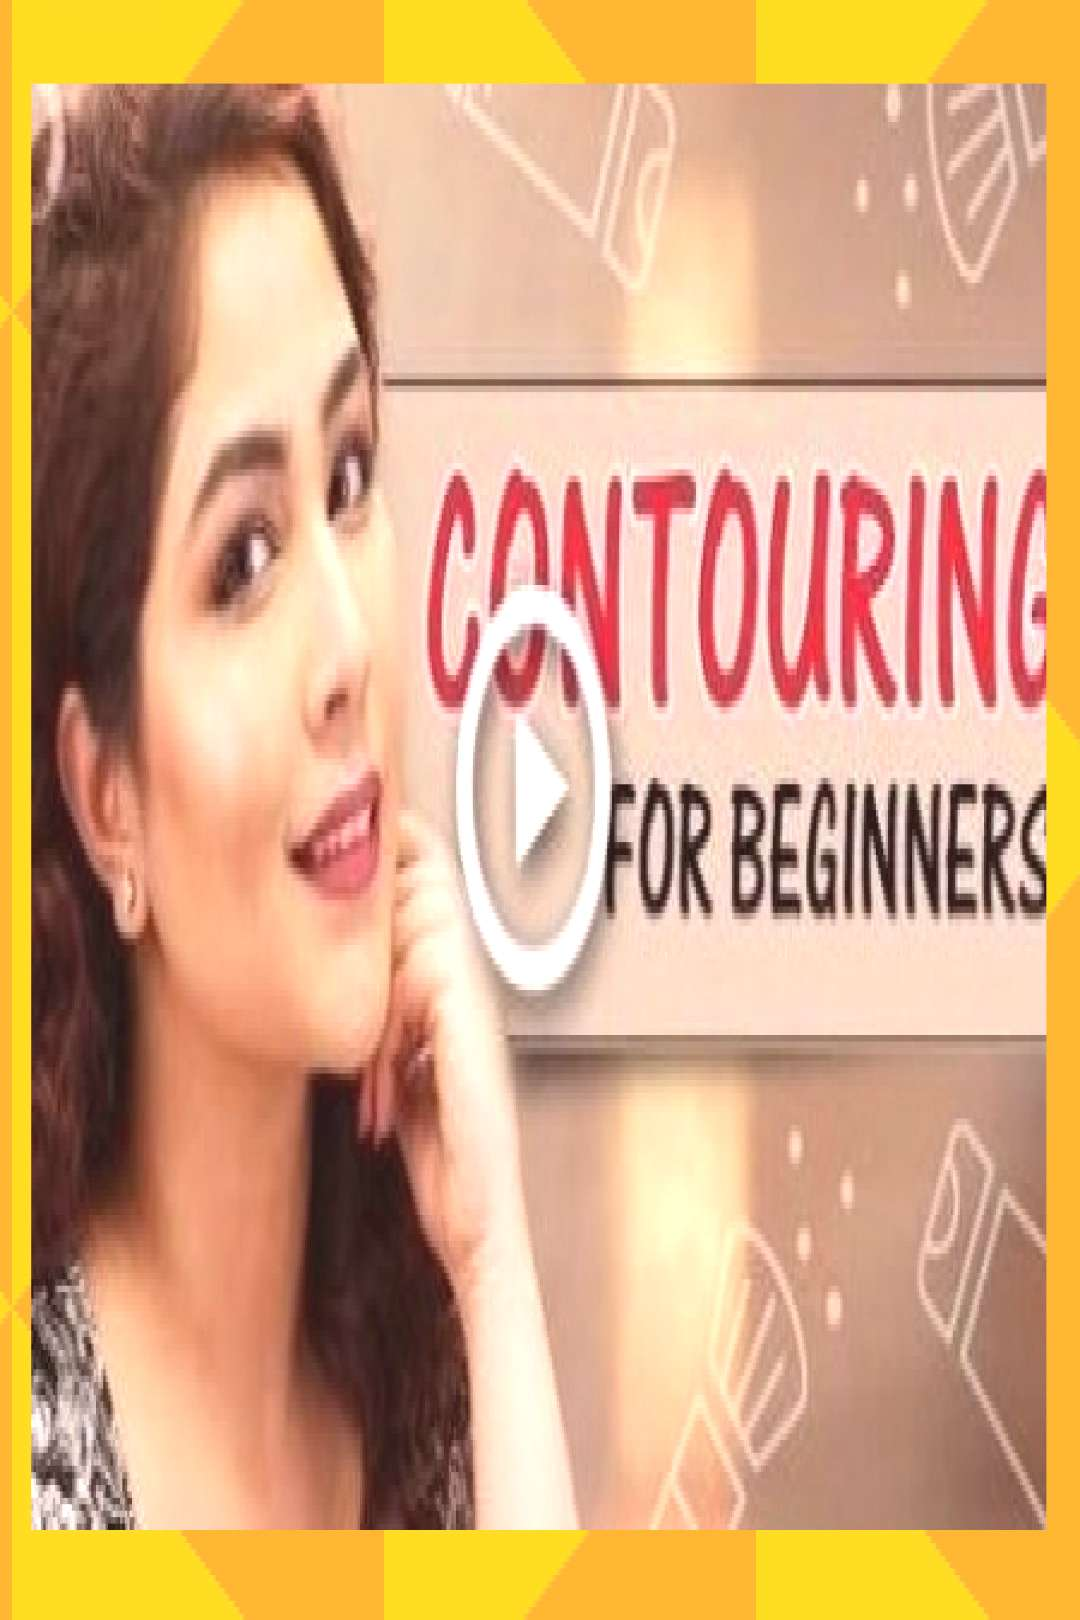 Contouring for Beginners Makeup Tutorial Beginner ... - Contouring for Beginners Makeup Tutorial B